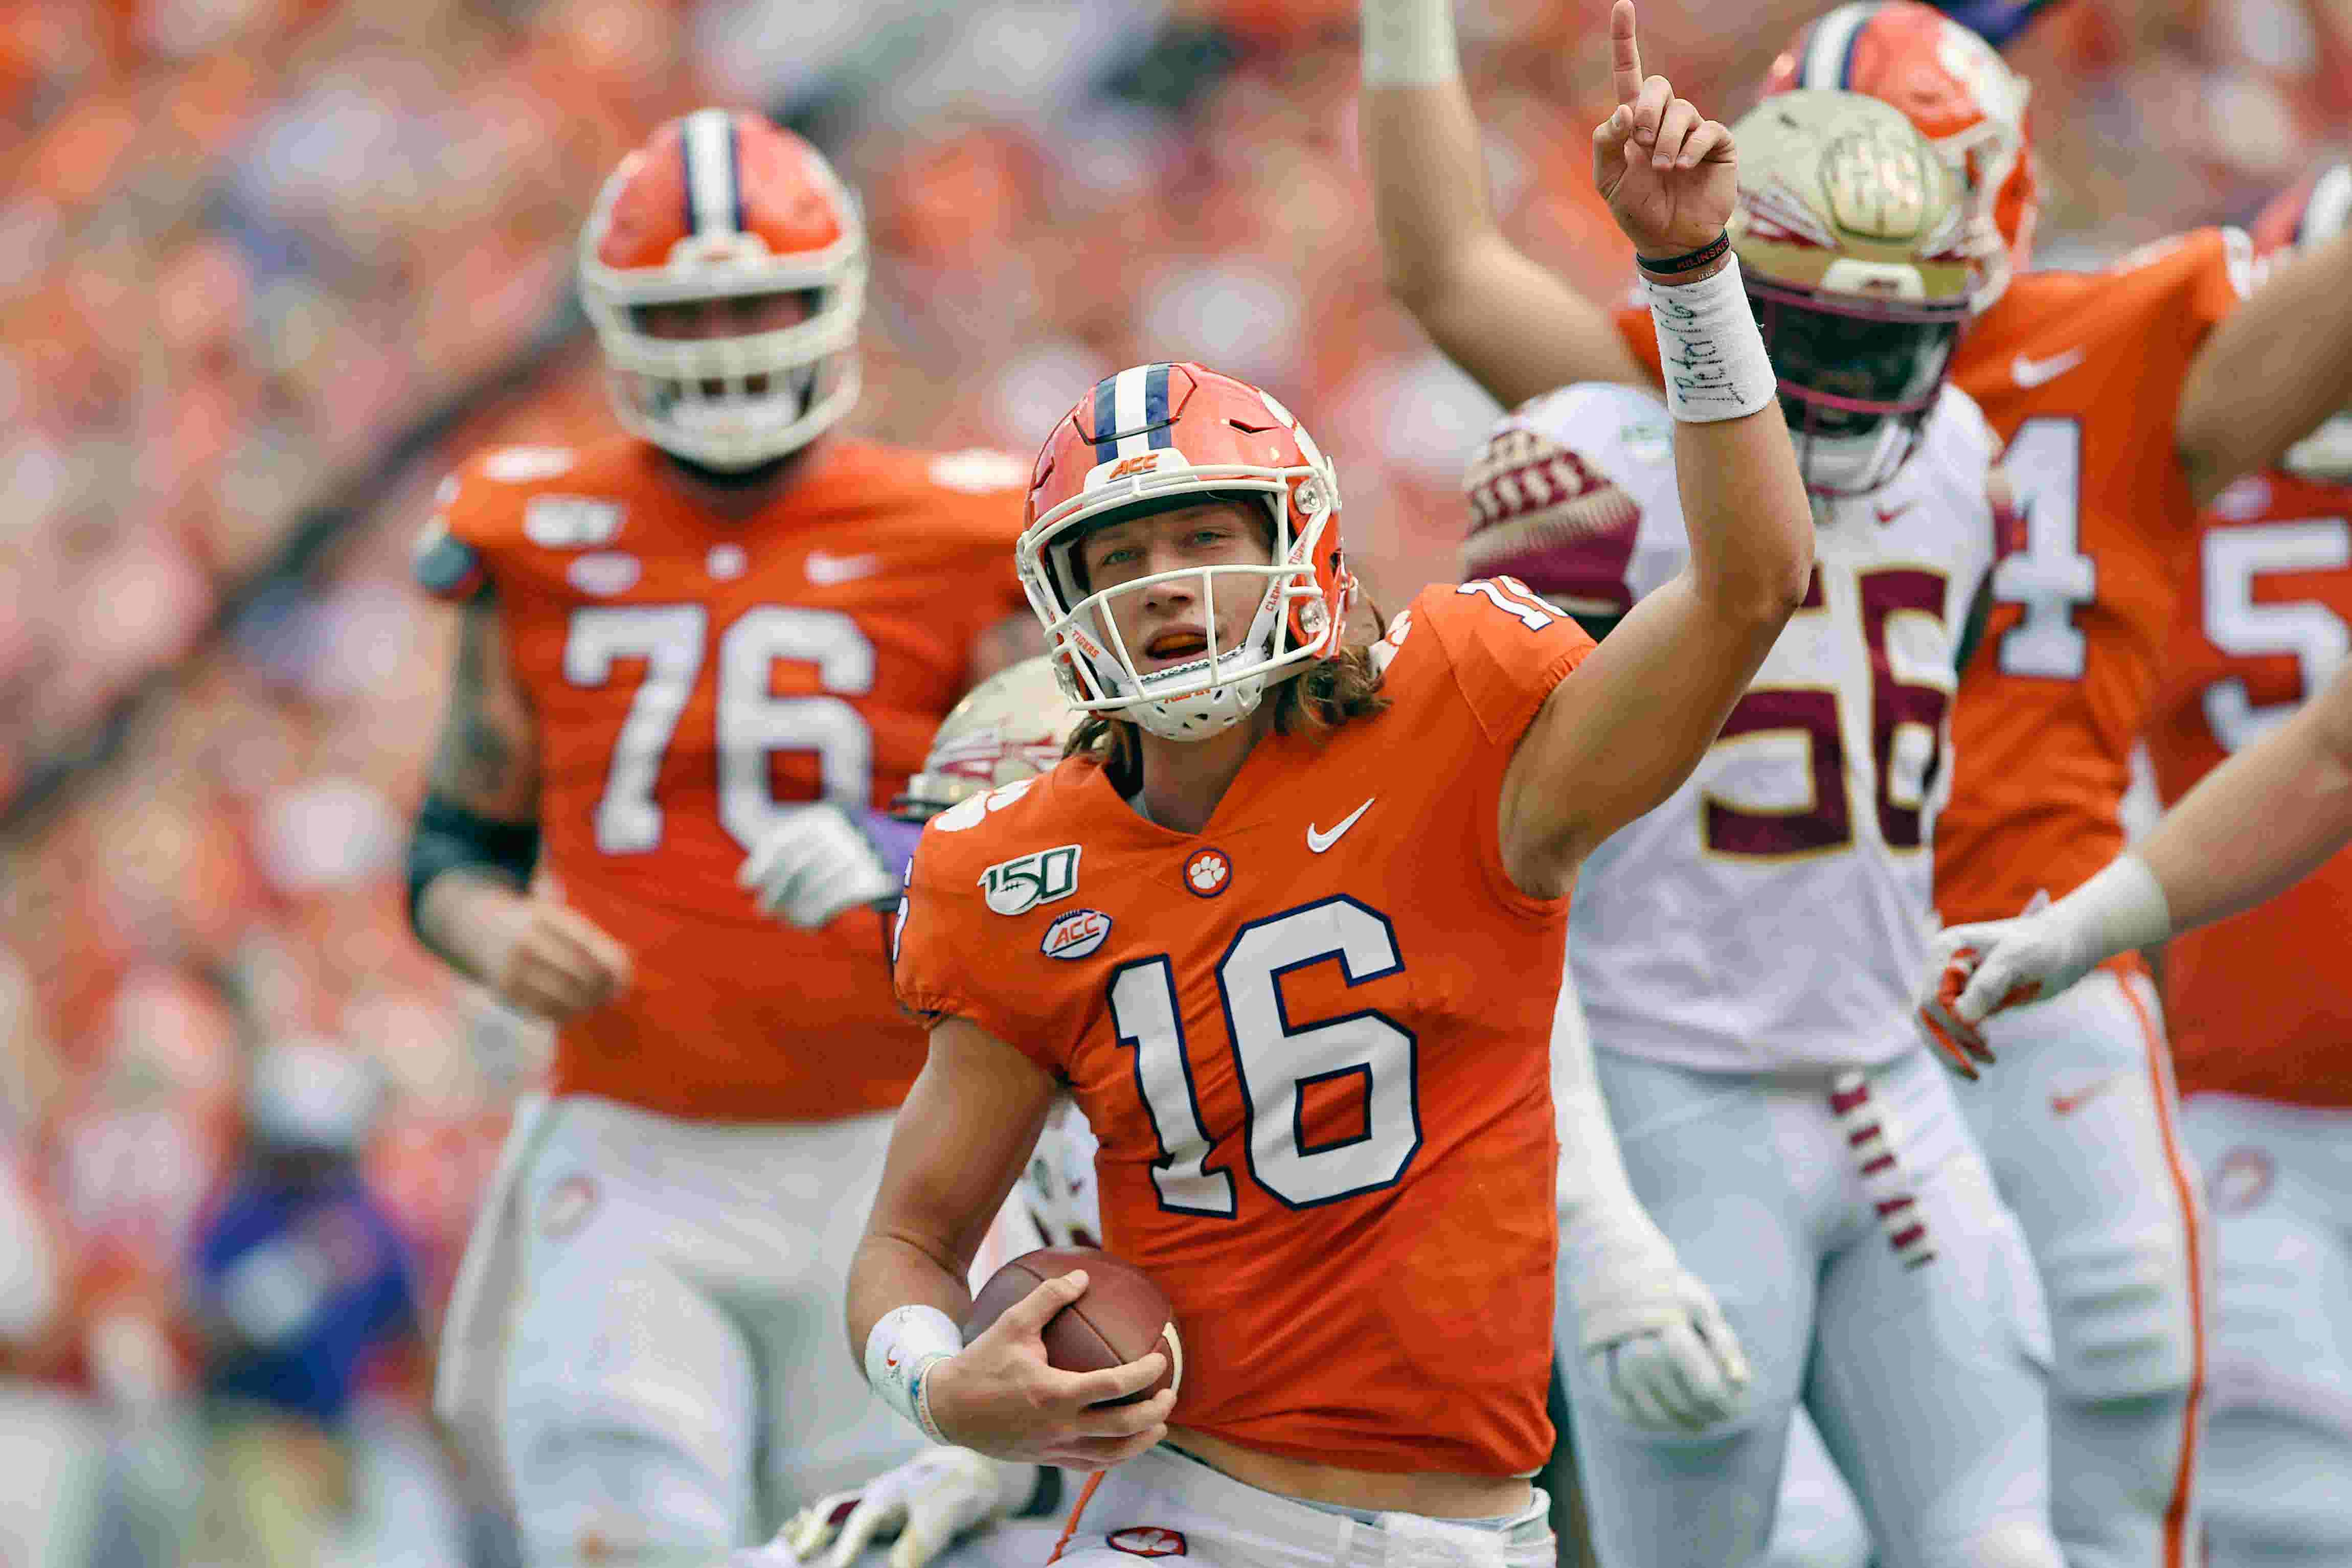 What to expect from college football this season